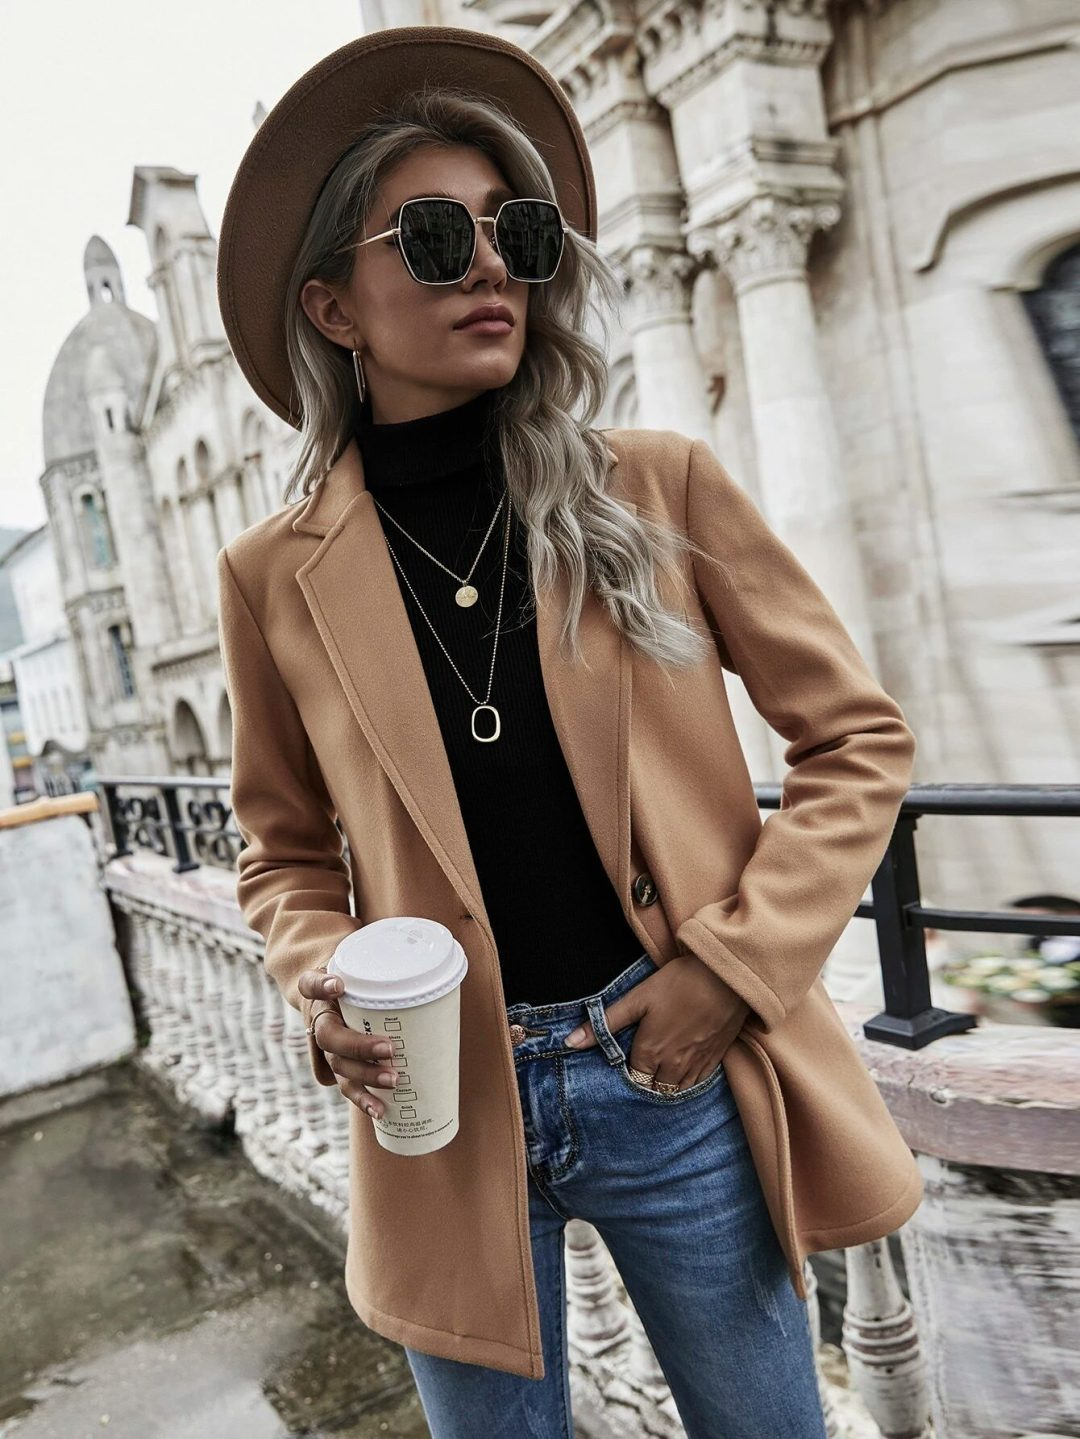 Beige blazer outfit with fedora hat and jeans